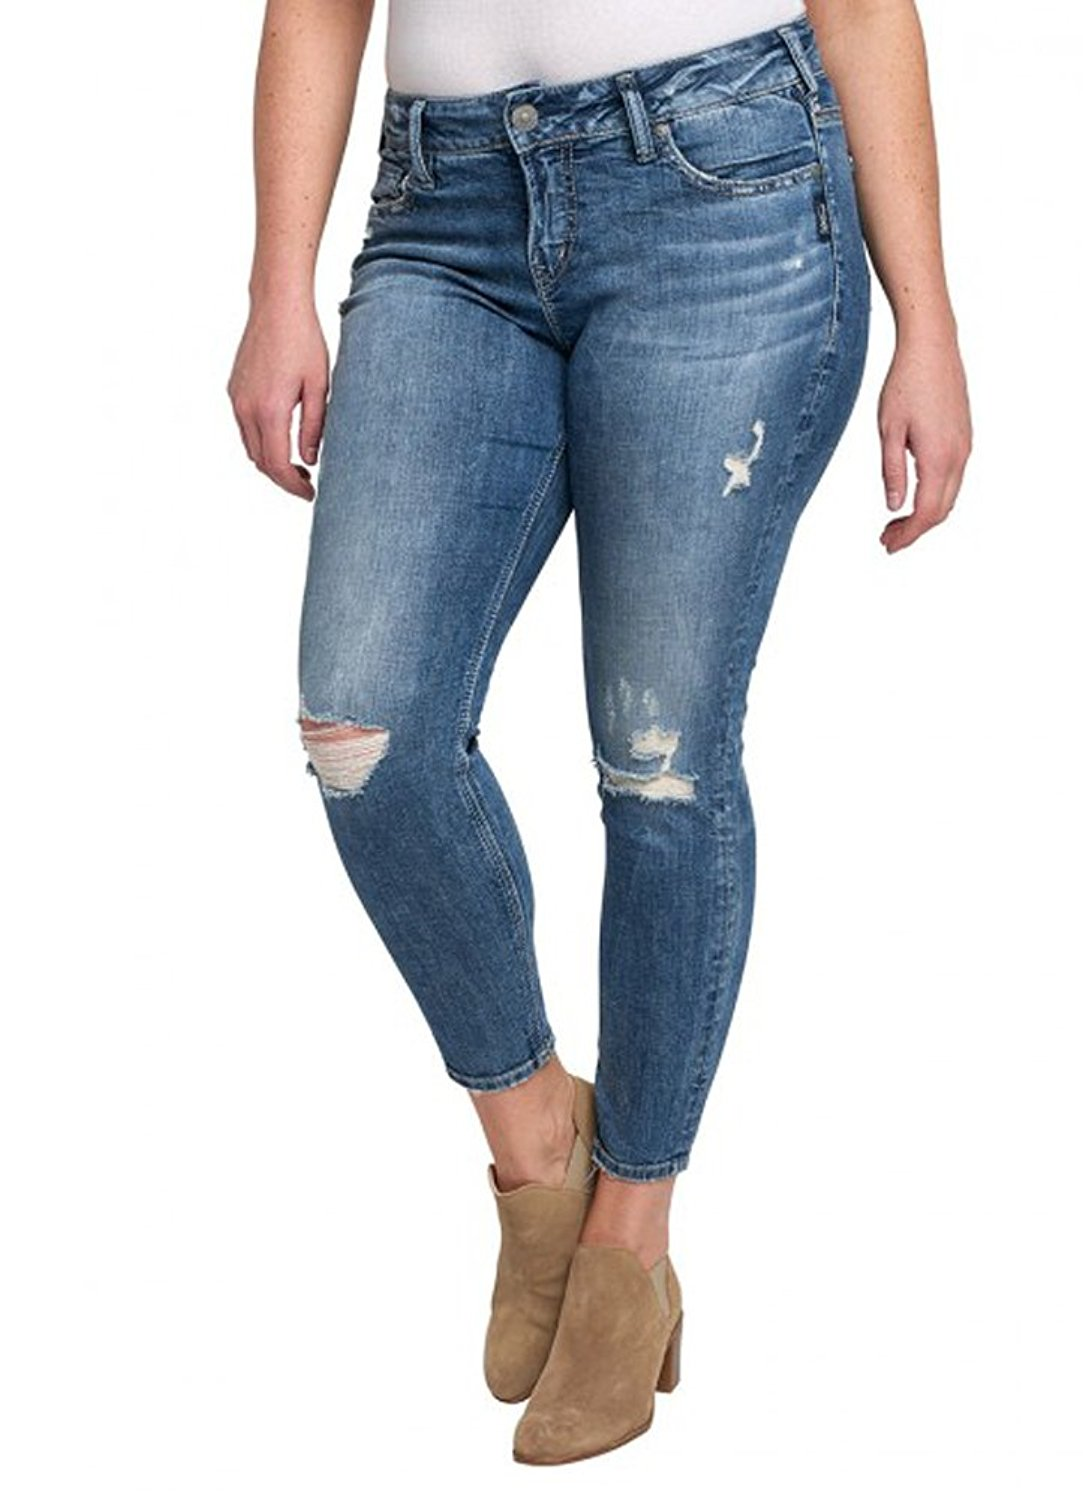 03a4800bf79 Get Quotations · Silver Jeans Women s Plus Size Suki Mid-Rise Ankle Skinny Jeans  Dark Wash